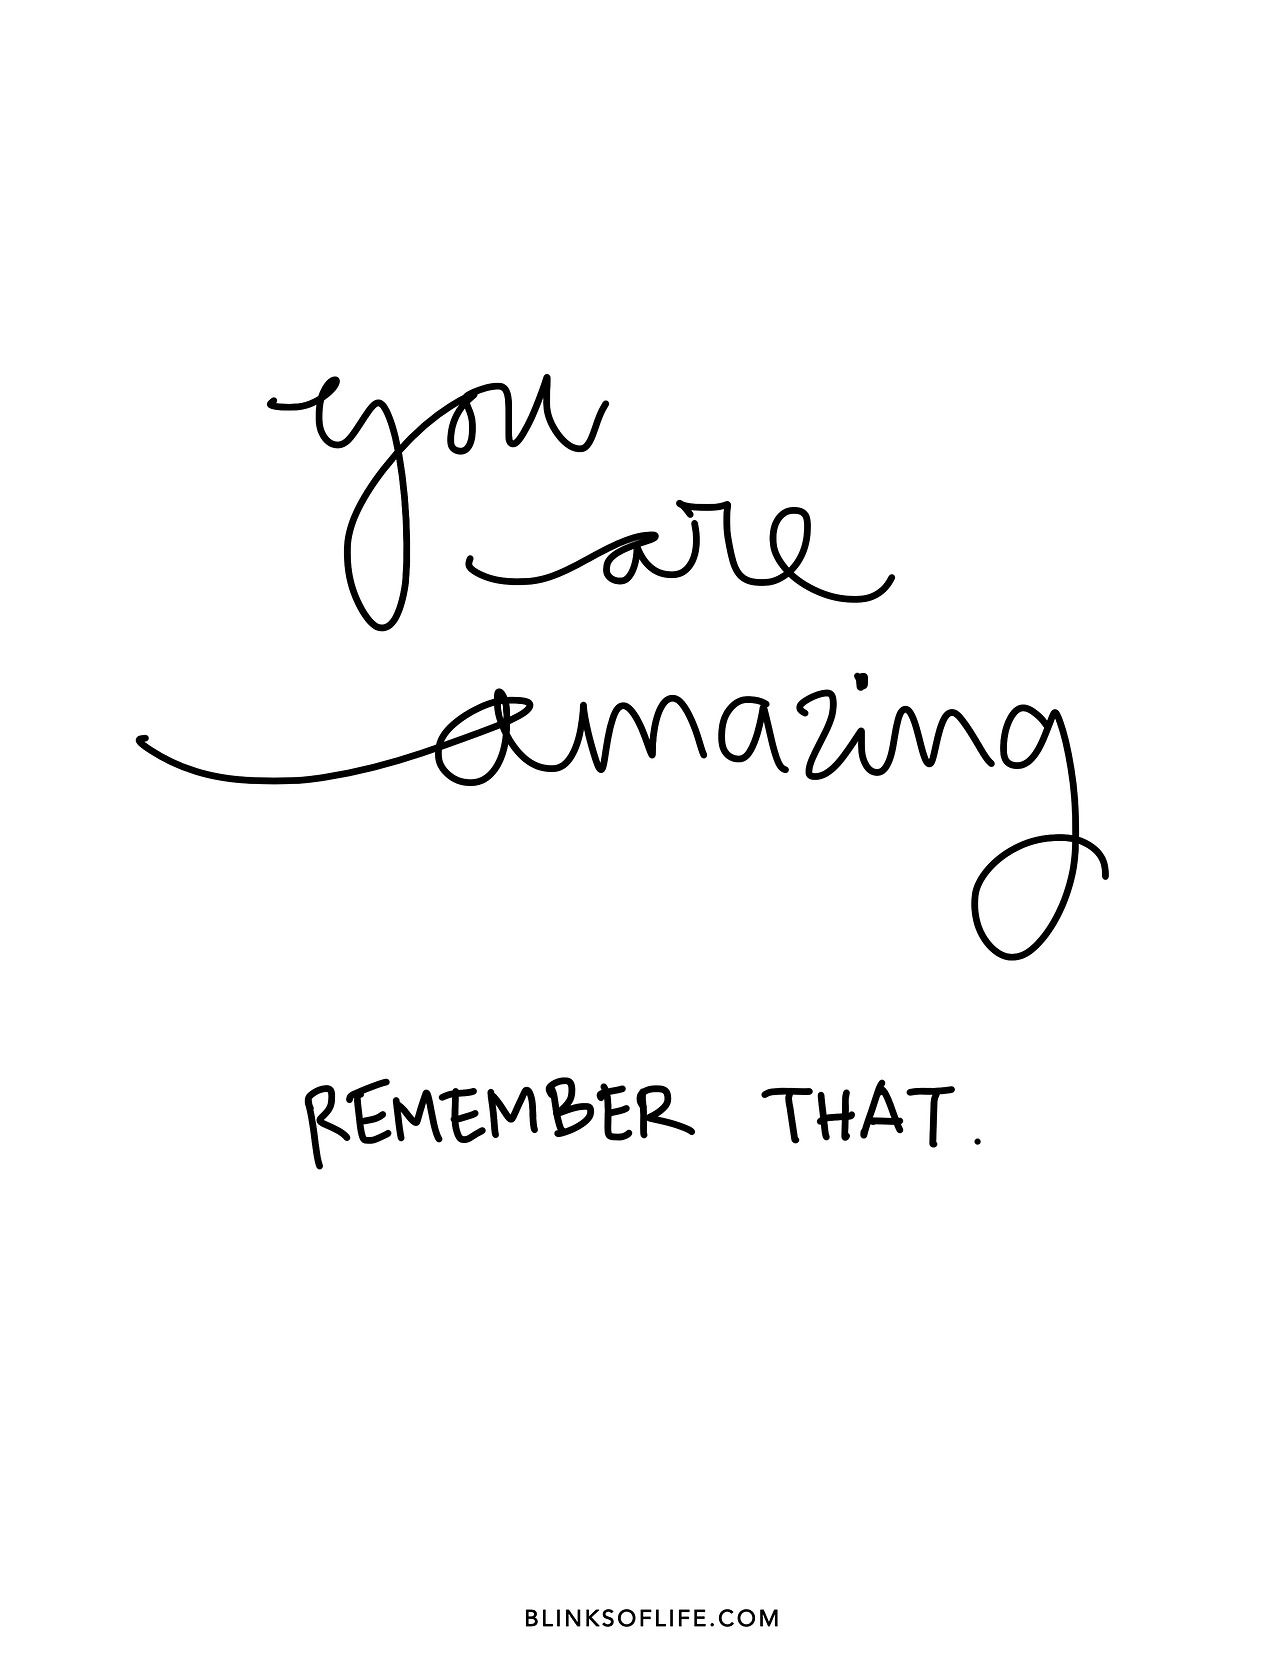 You're all amazing and beautiful just the way you are! <3 if you ever need to talk, I'm a great listener! x